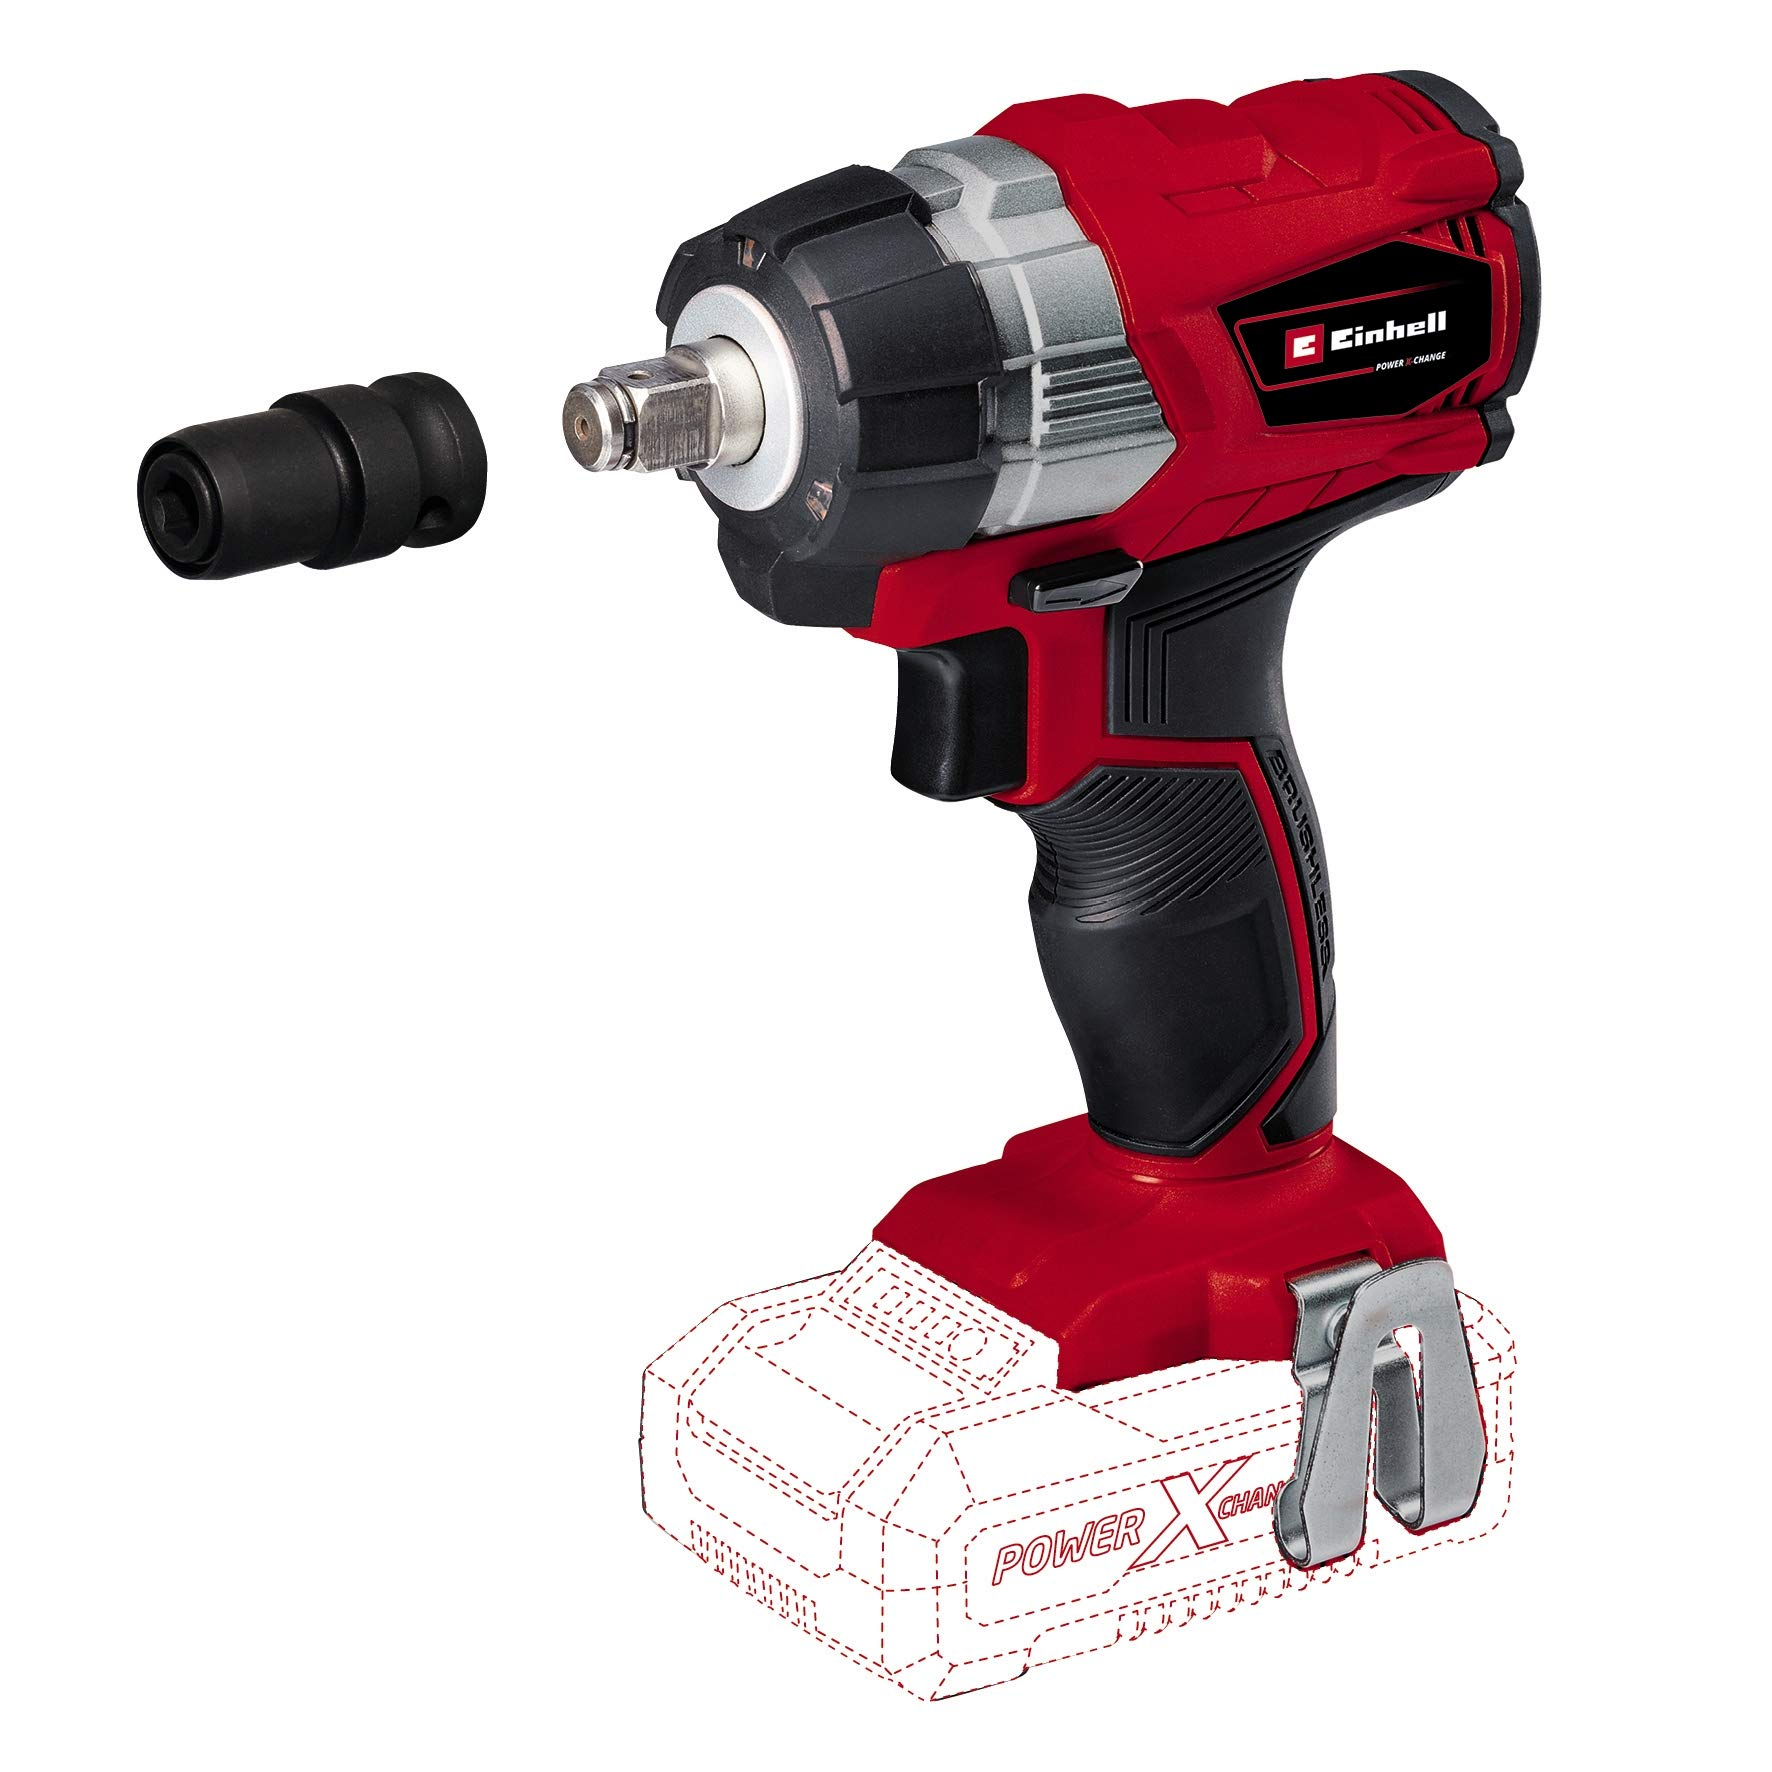 Einhell TE-CW 18 Li BL-Solo Power X-Change Cordless Impact Wrench - Supplied without Battery and Charger